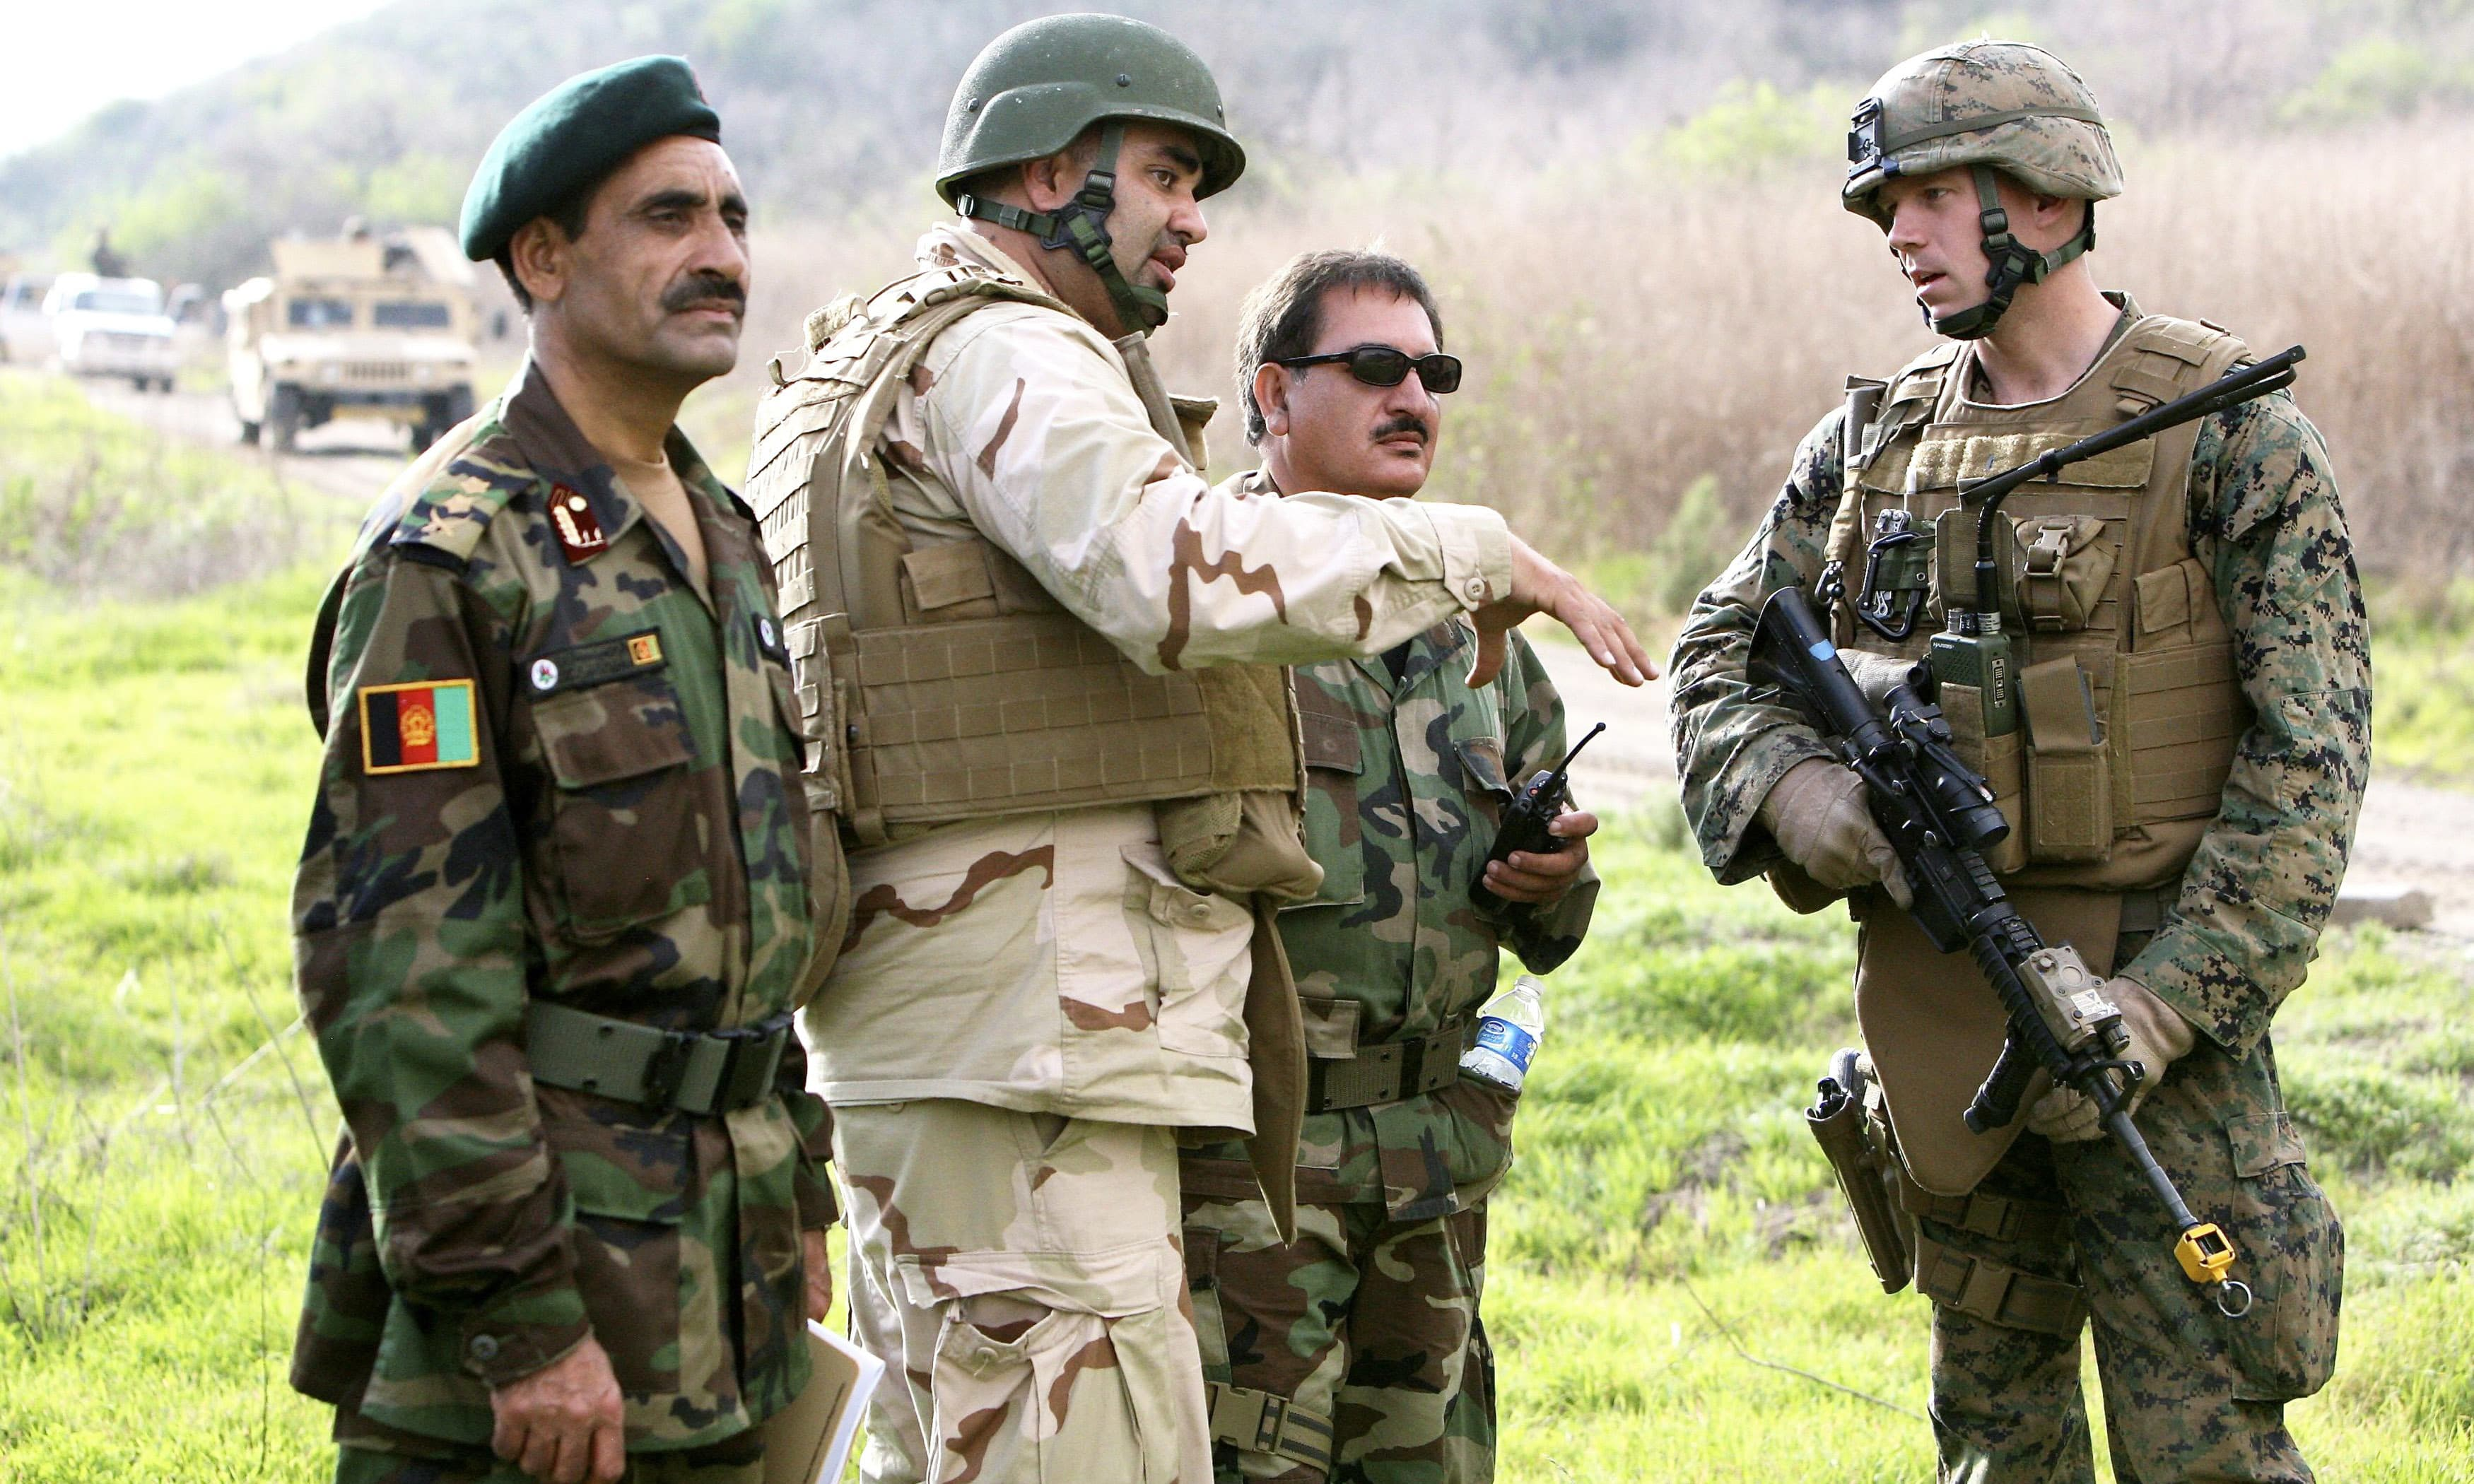 Dozens of Afghan troops missing from military training in US